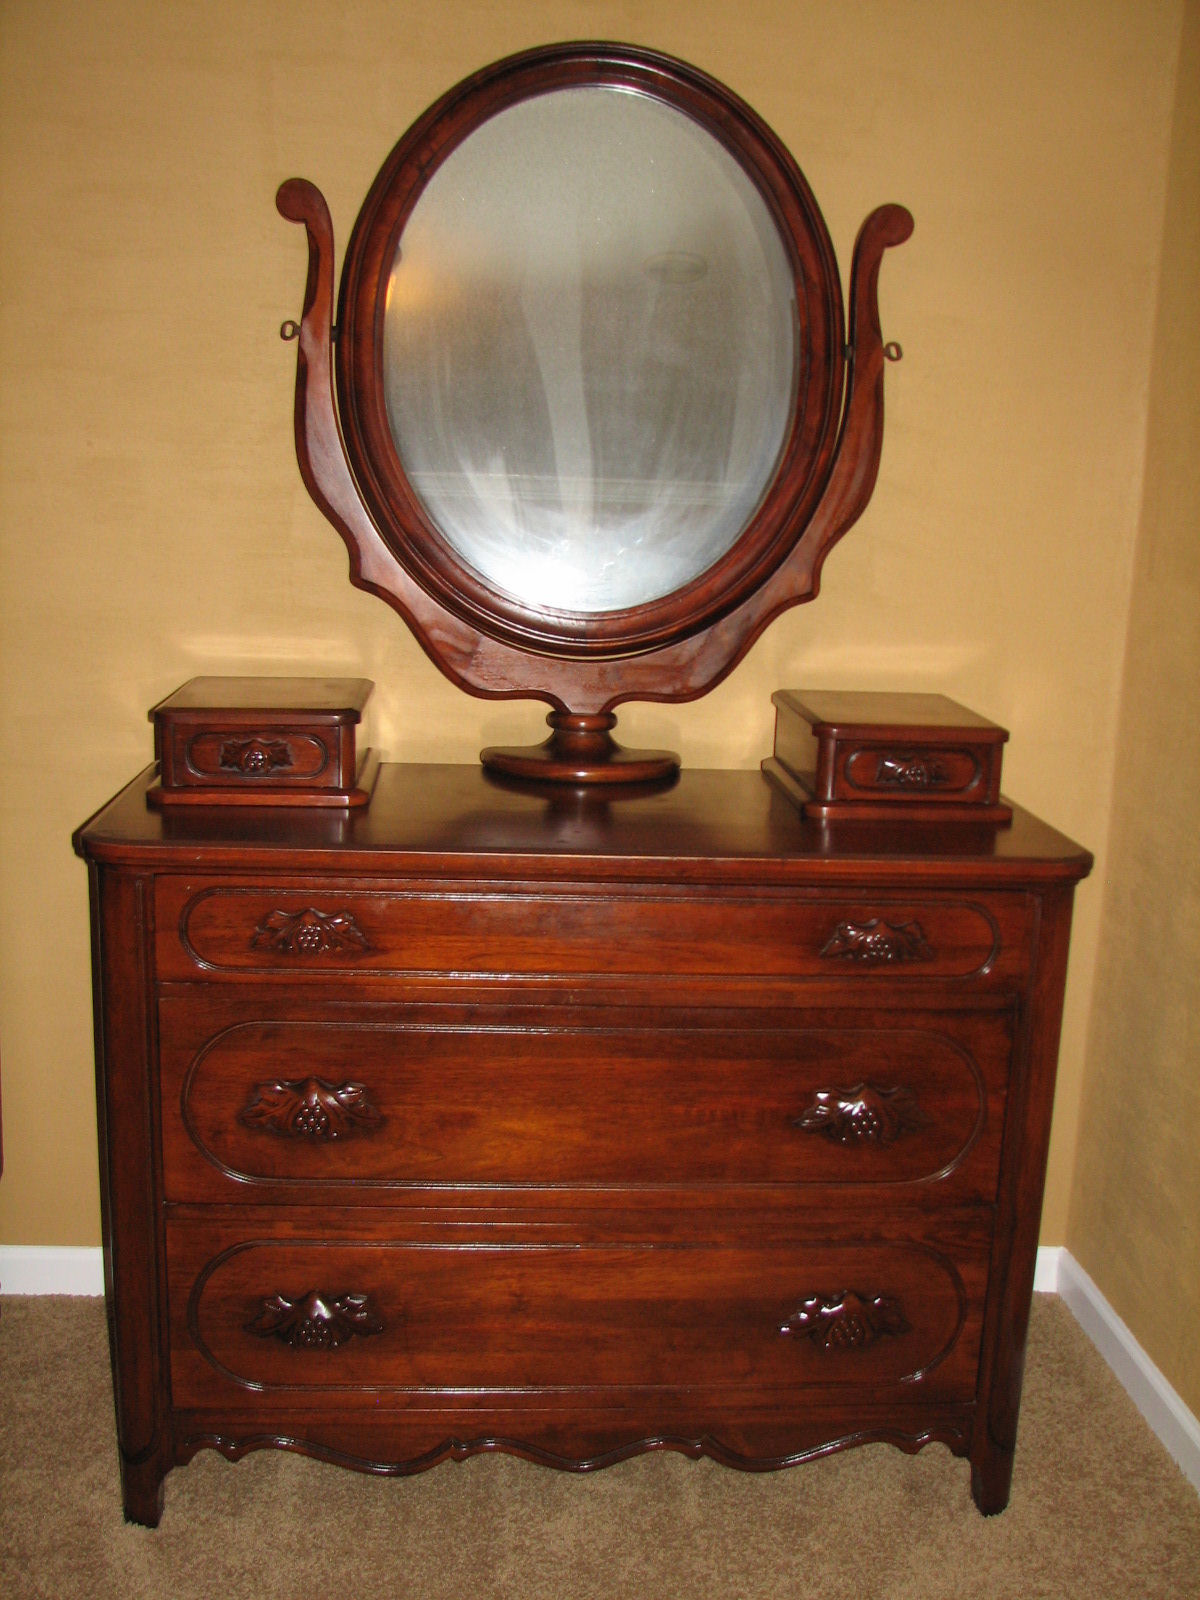 Russell Black Walnut Bedroom Set For Sale Classifieds - Antique Bedroom Furniture